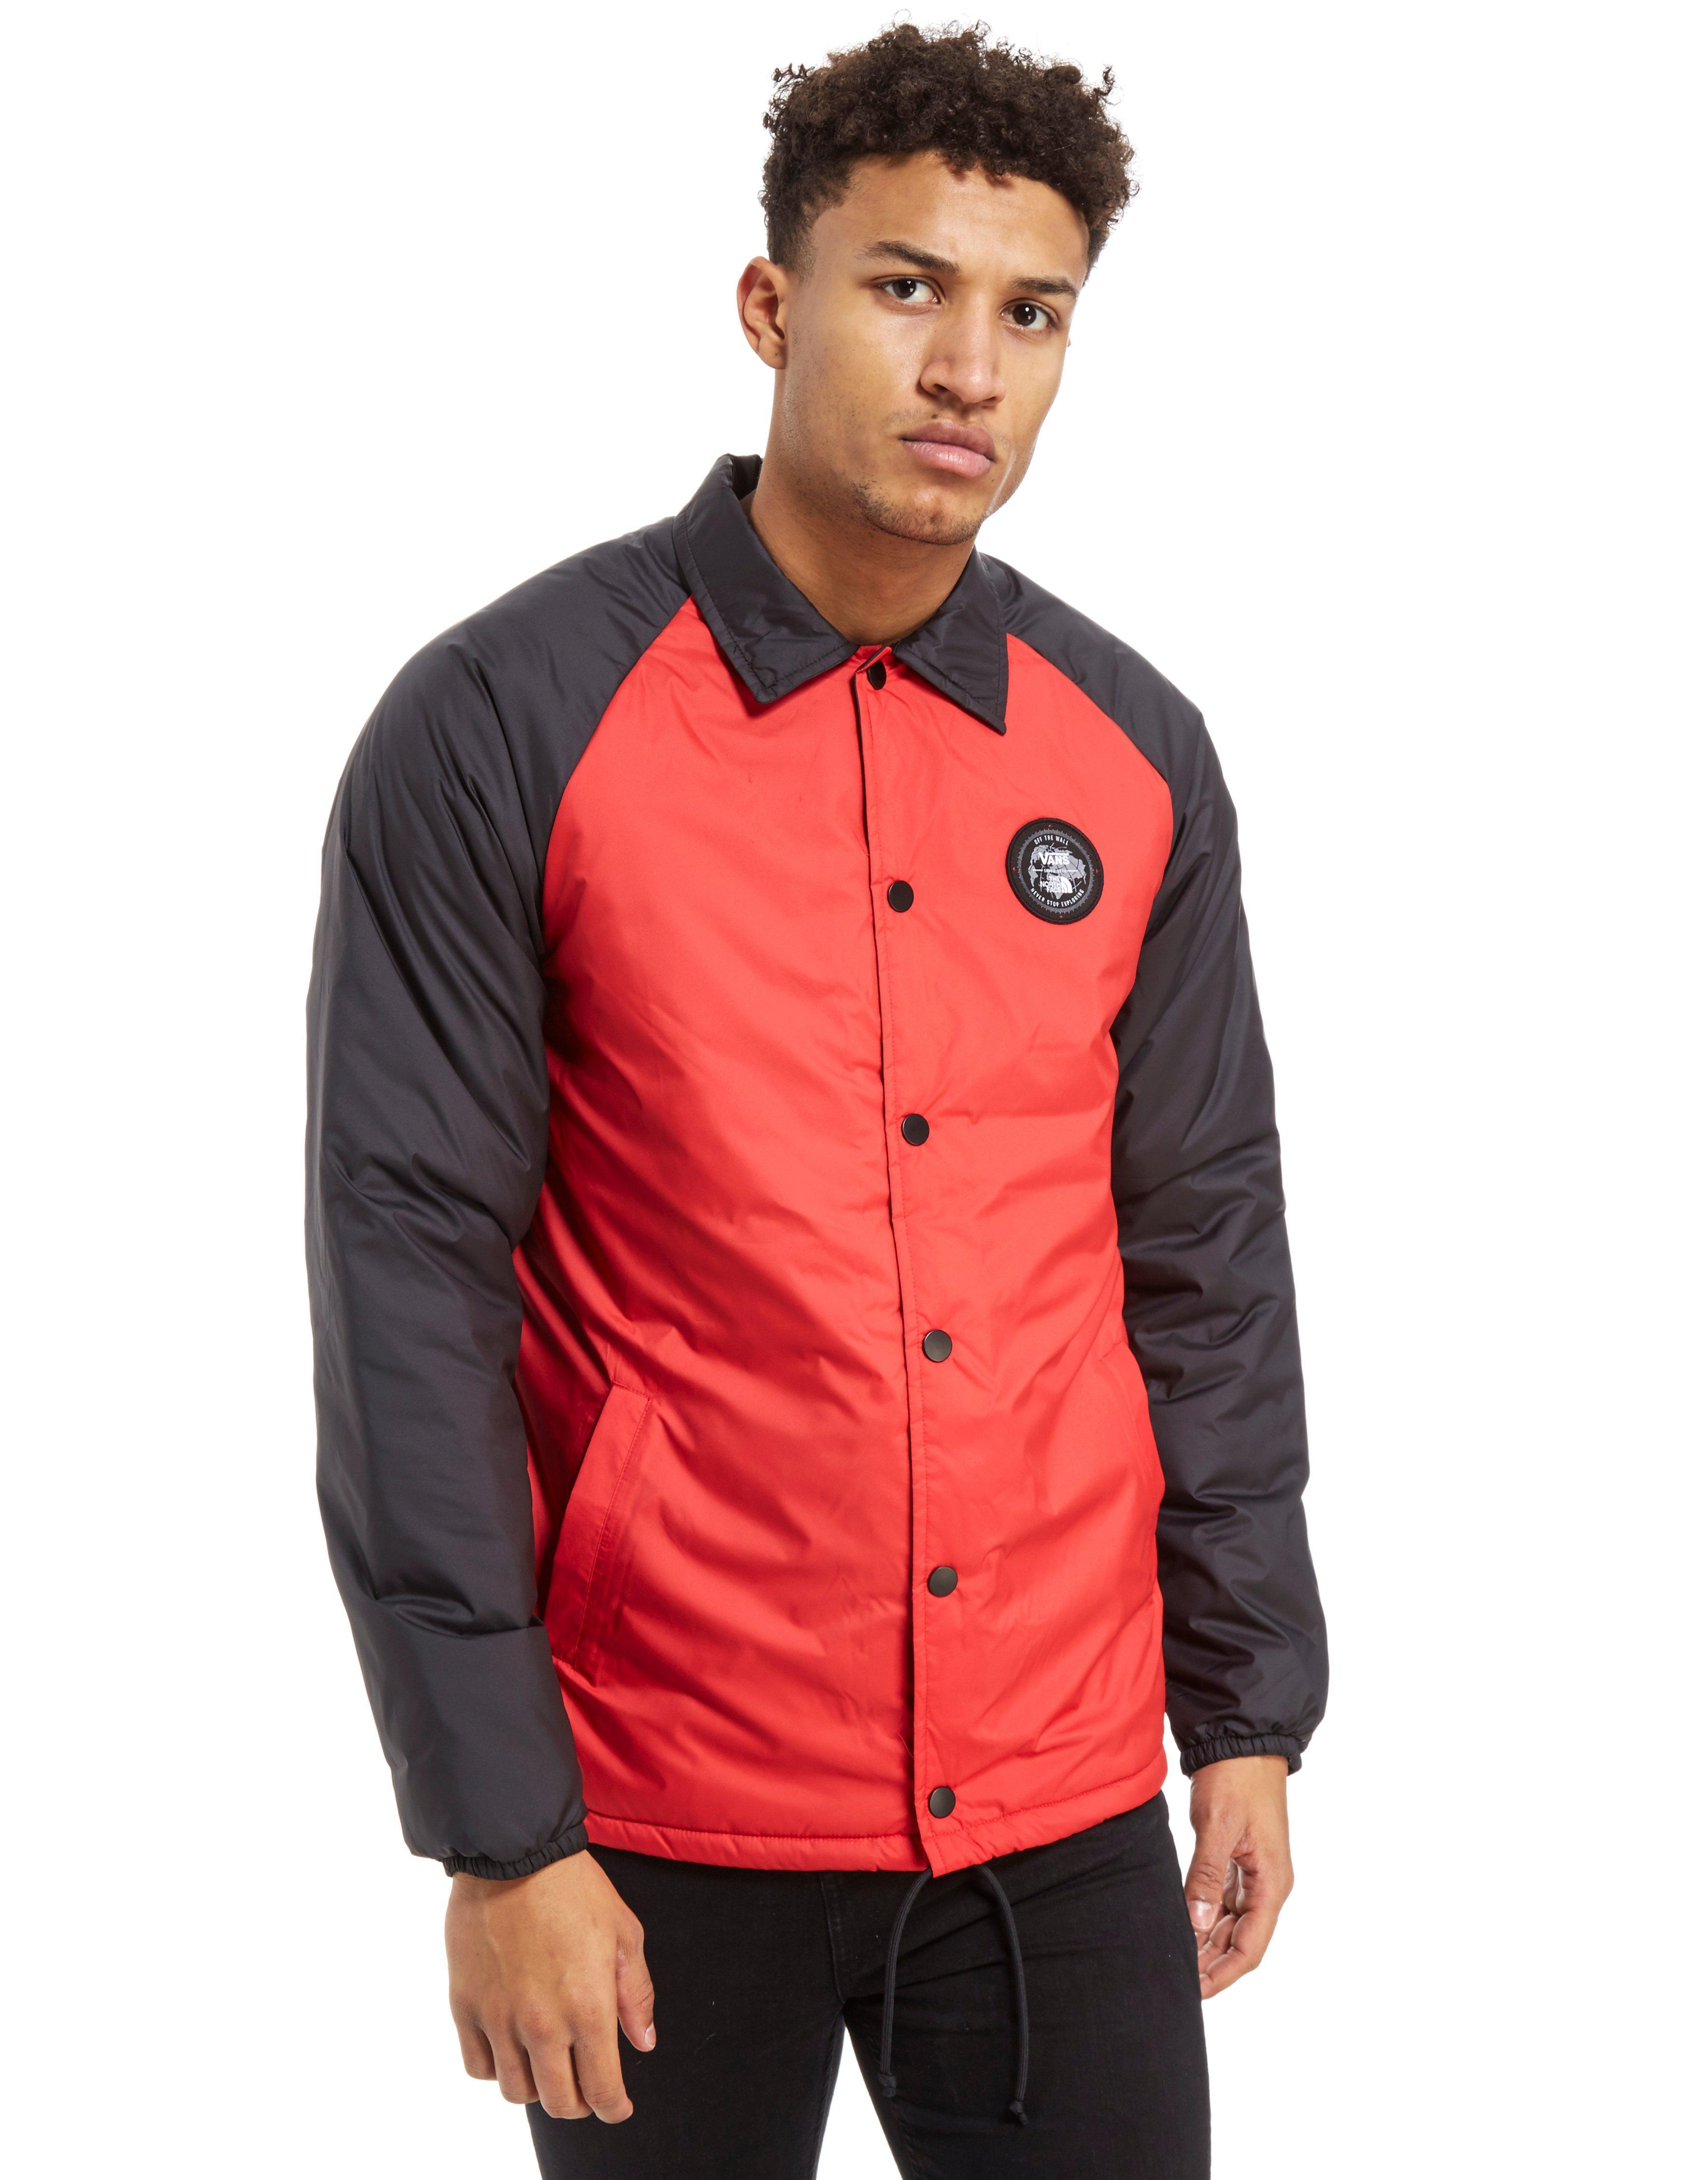 39e7a532be9f Vans ® X The North Face Thermoballtm Torrey Jacket in Red for Men - Lyst